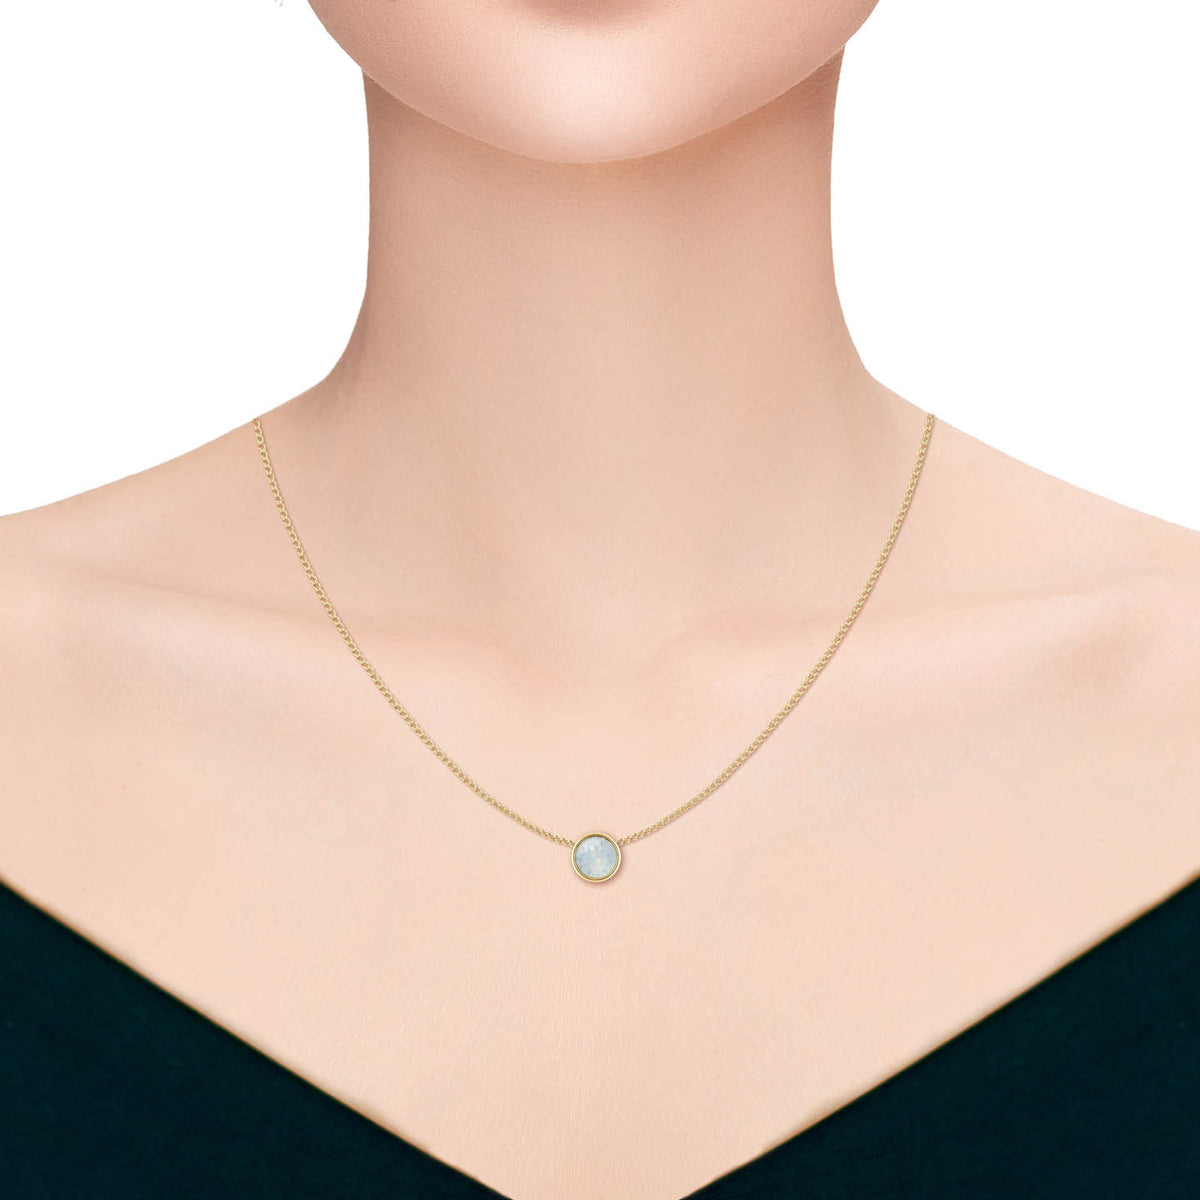 Harley Small Pendant Necklace with Ivory White Round Opals from Swarovski Gold Plated - Ed Heart